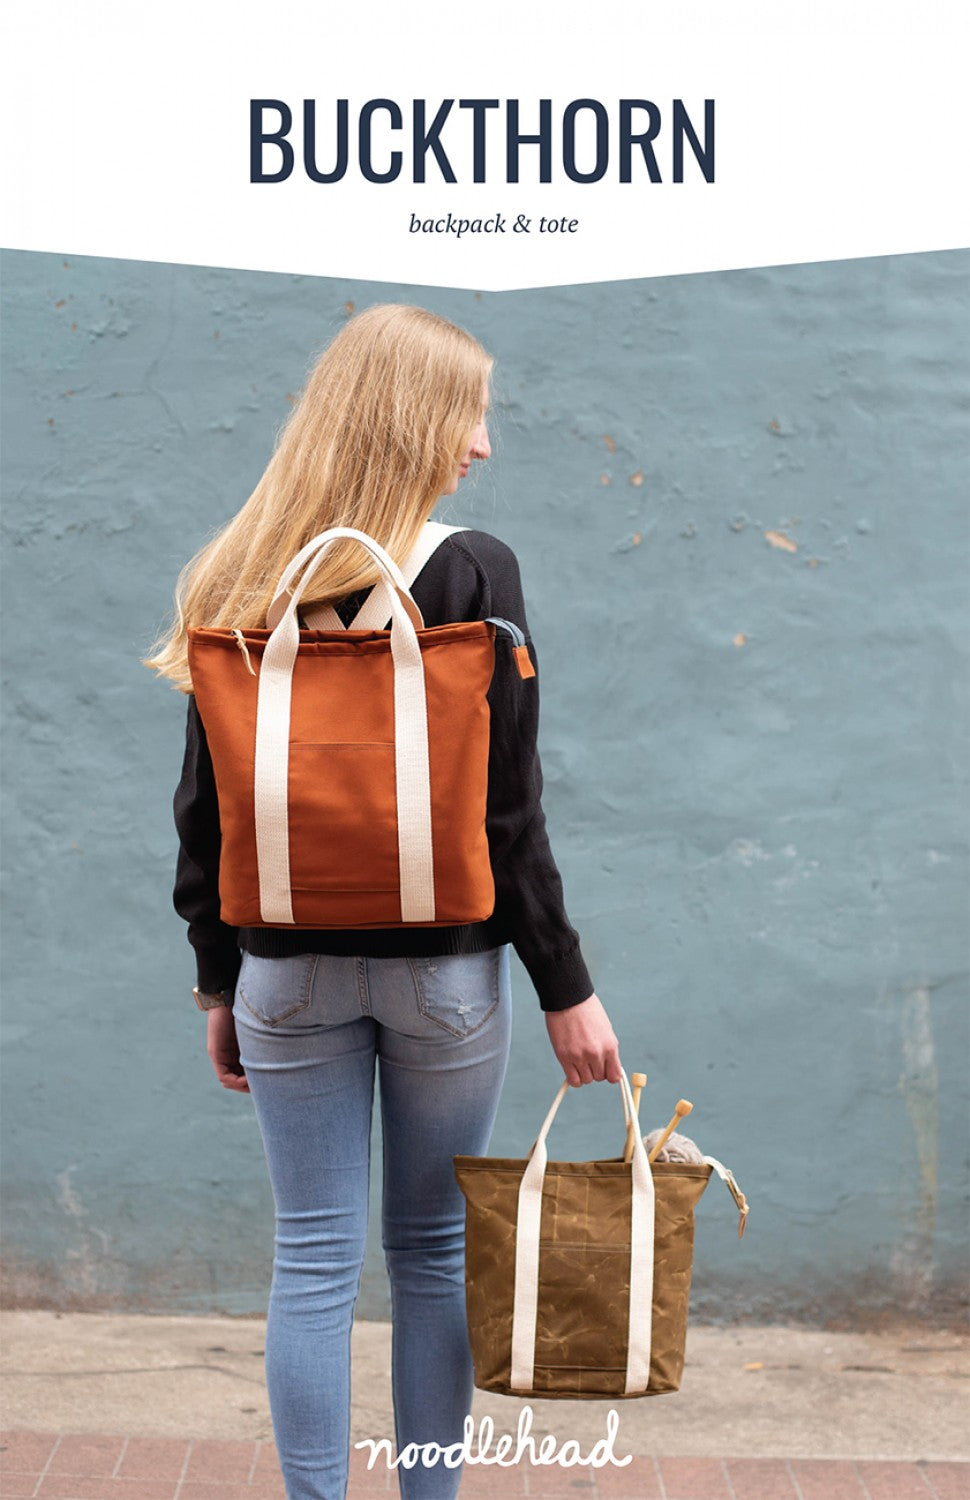 Buckthorn Backpack & Tote